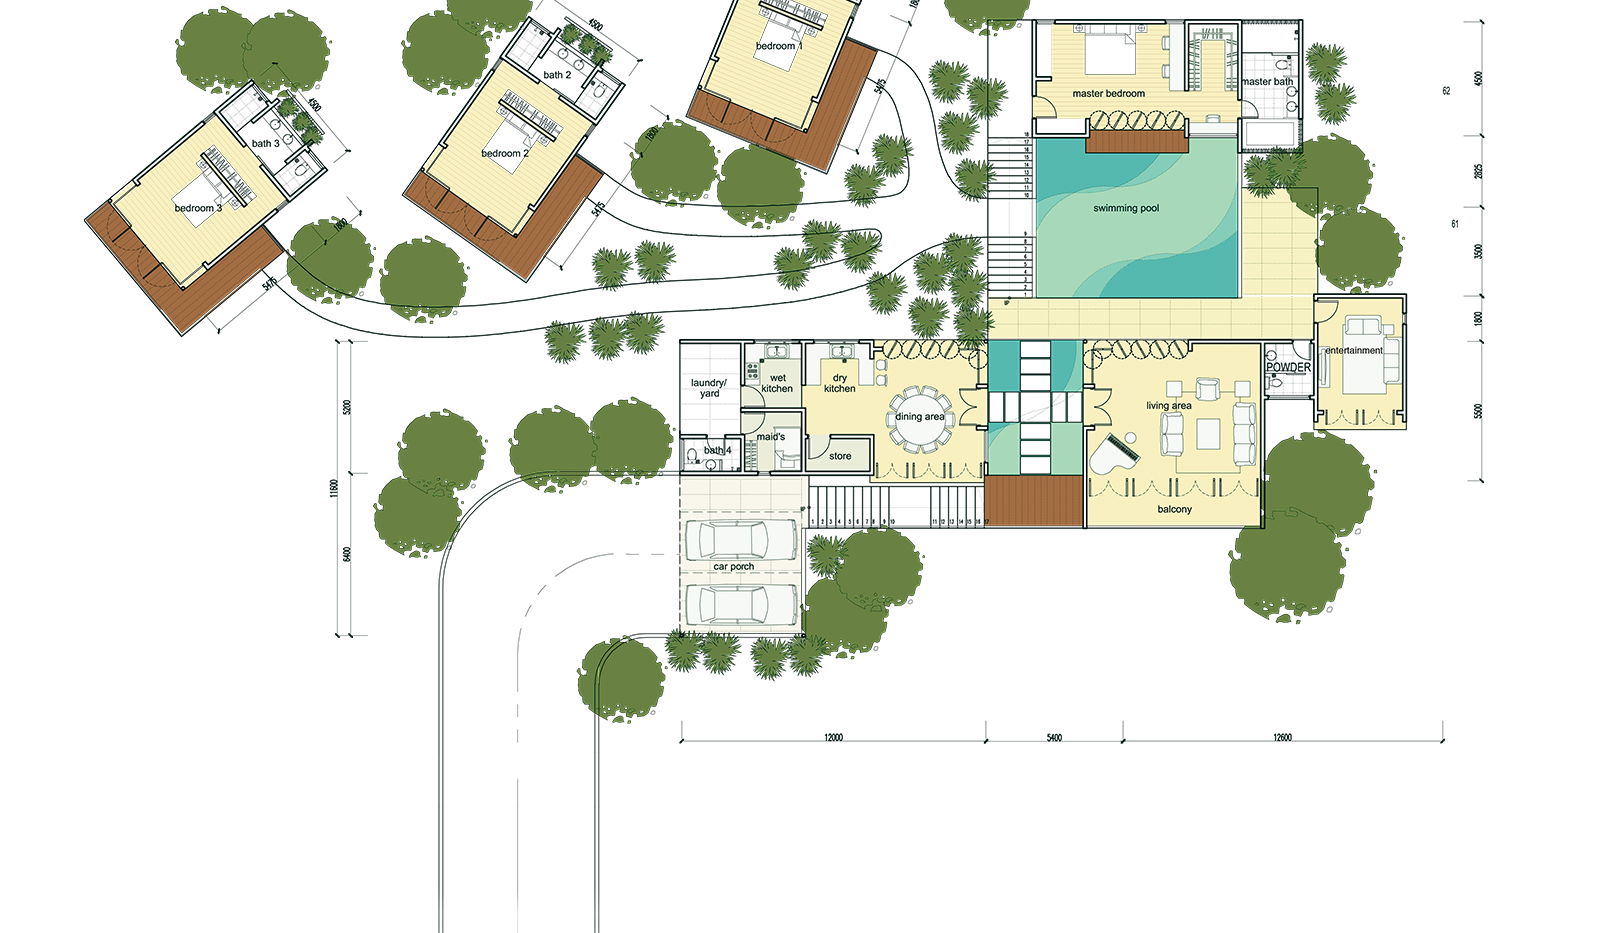 layout05_plan01.png